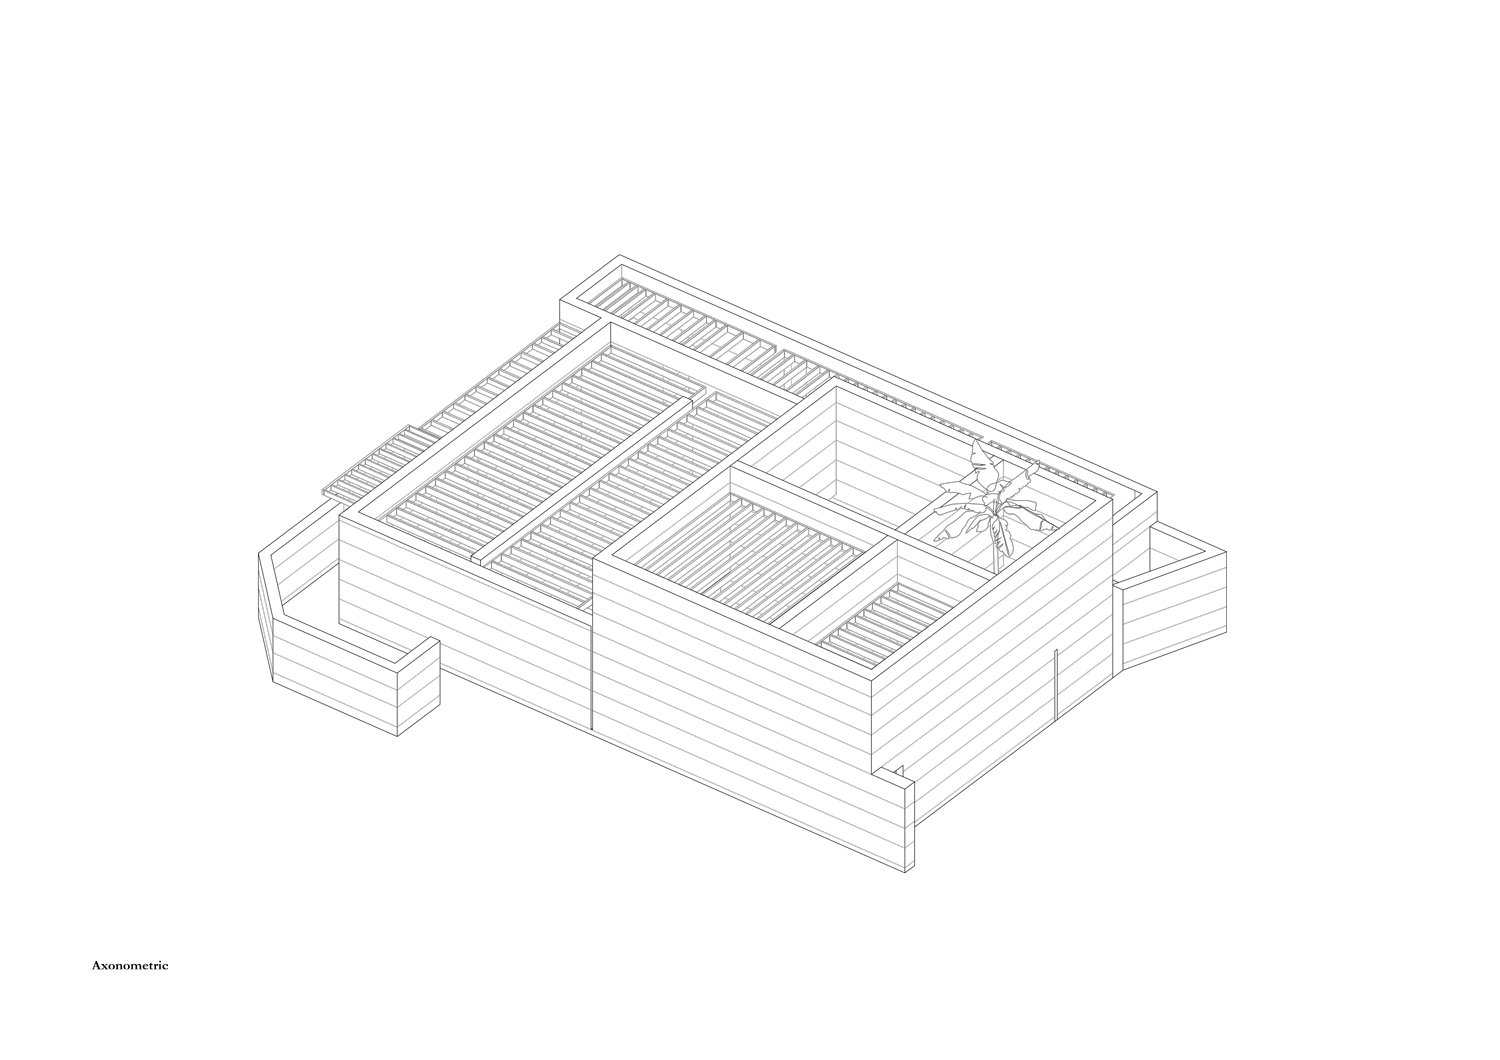 Axonometric view MORQ}